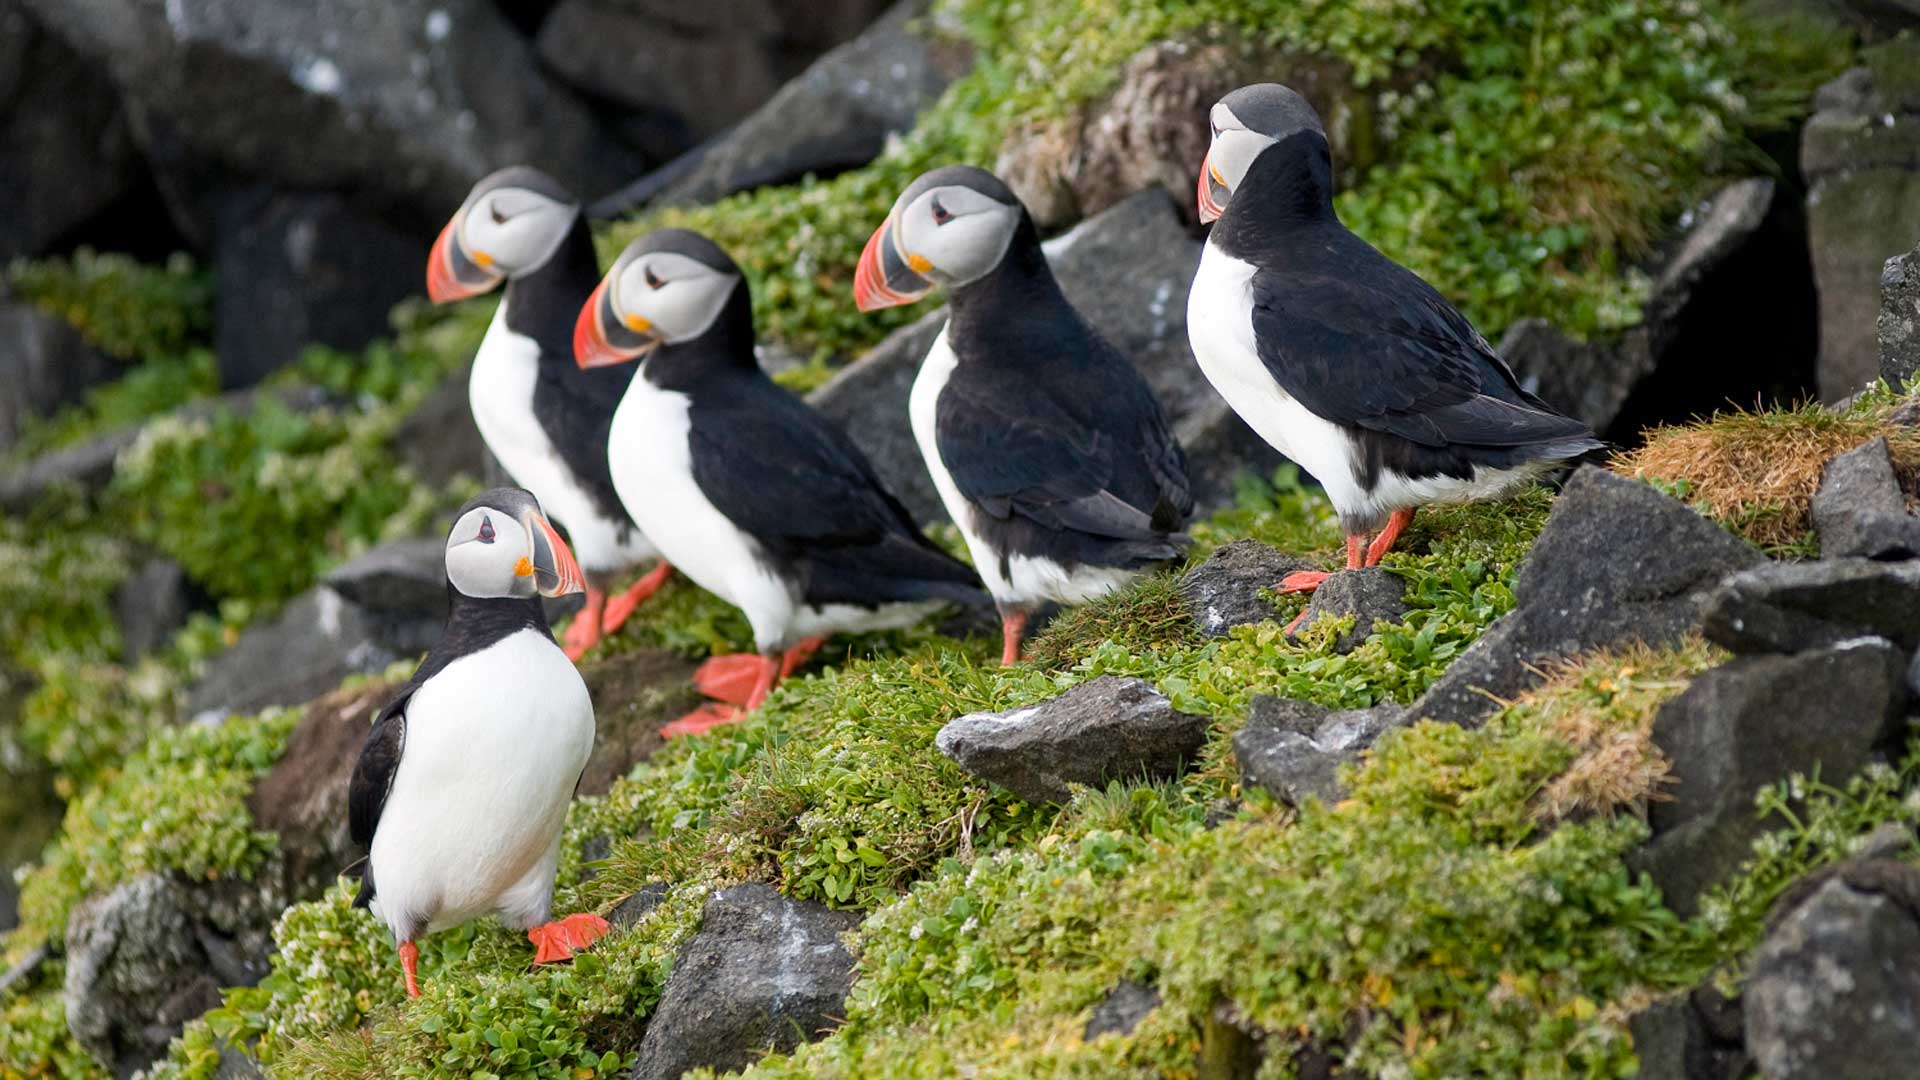 Puffins on a cliff in Norway